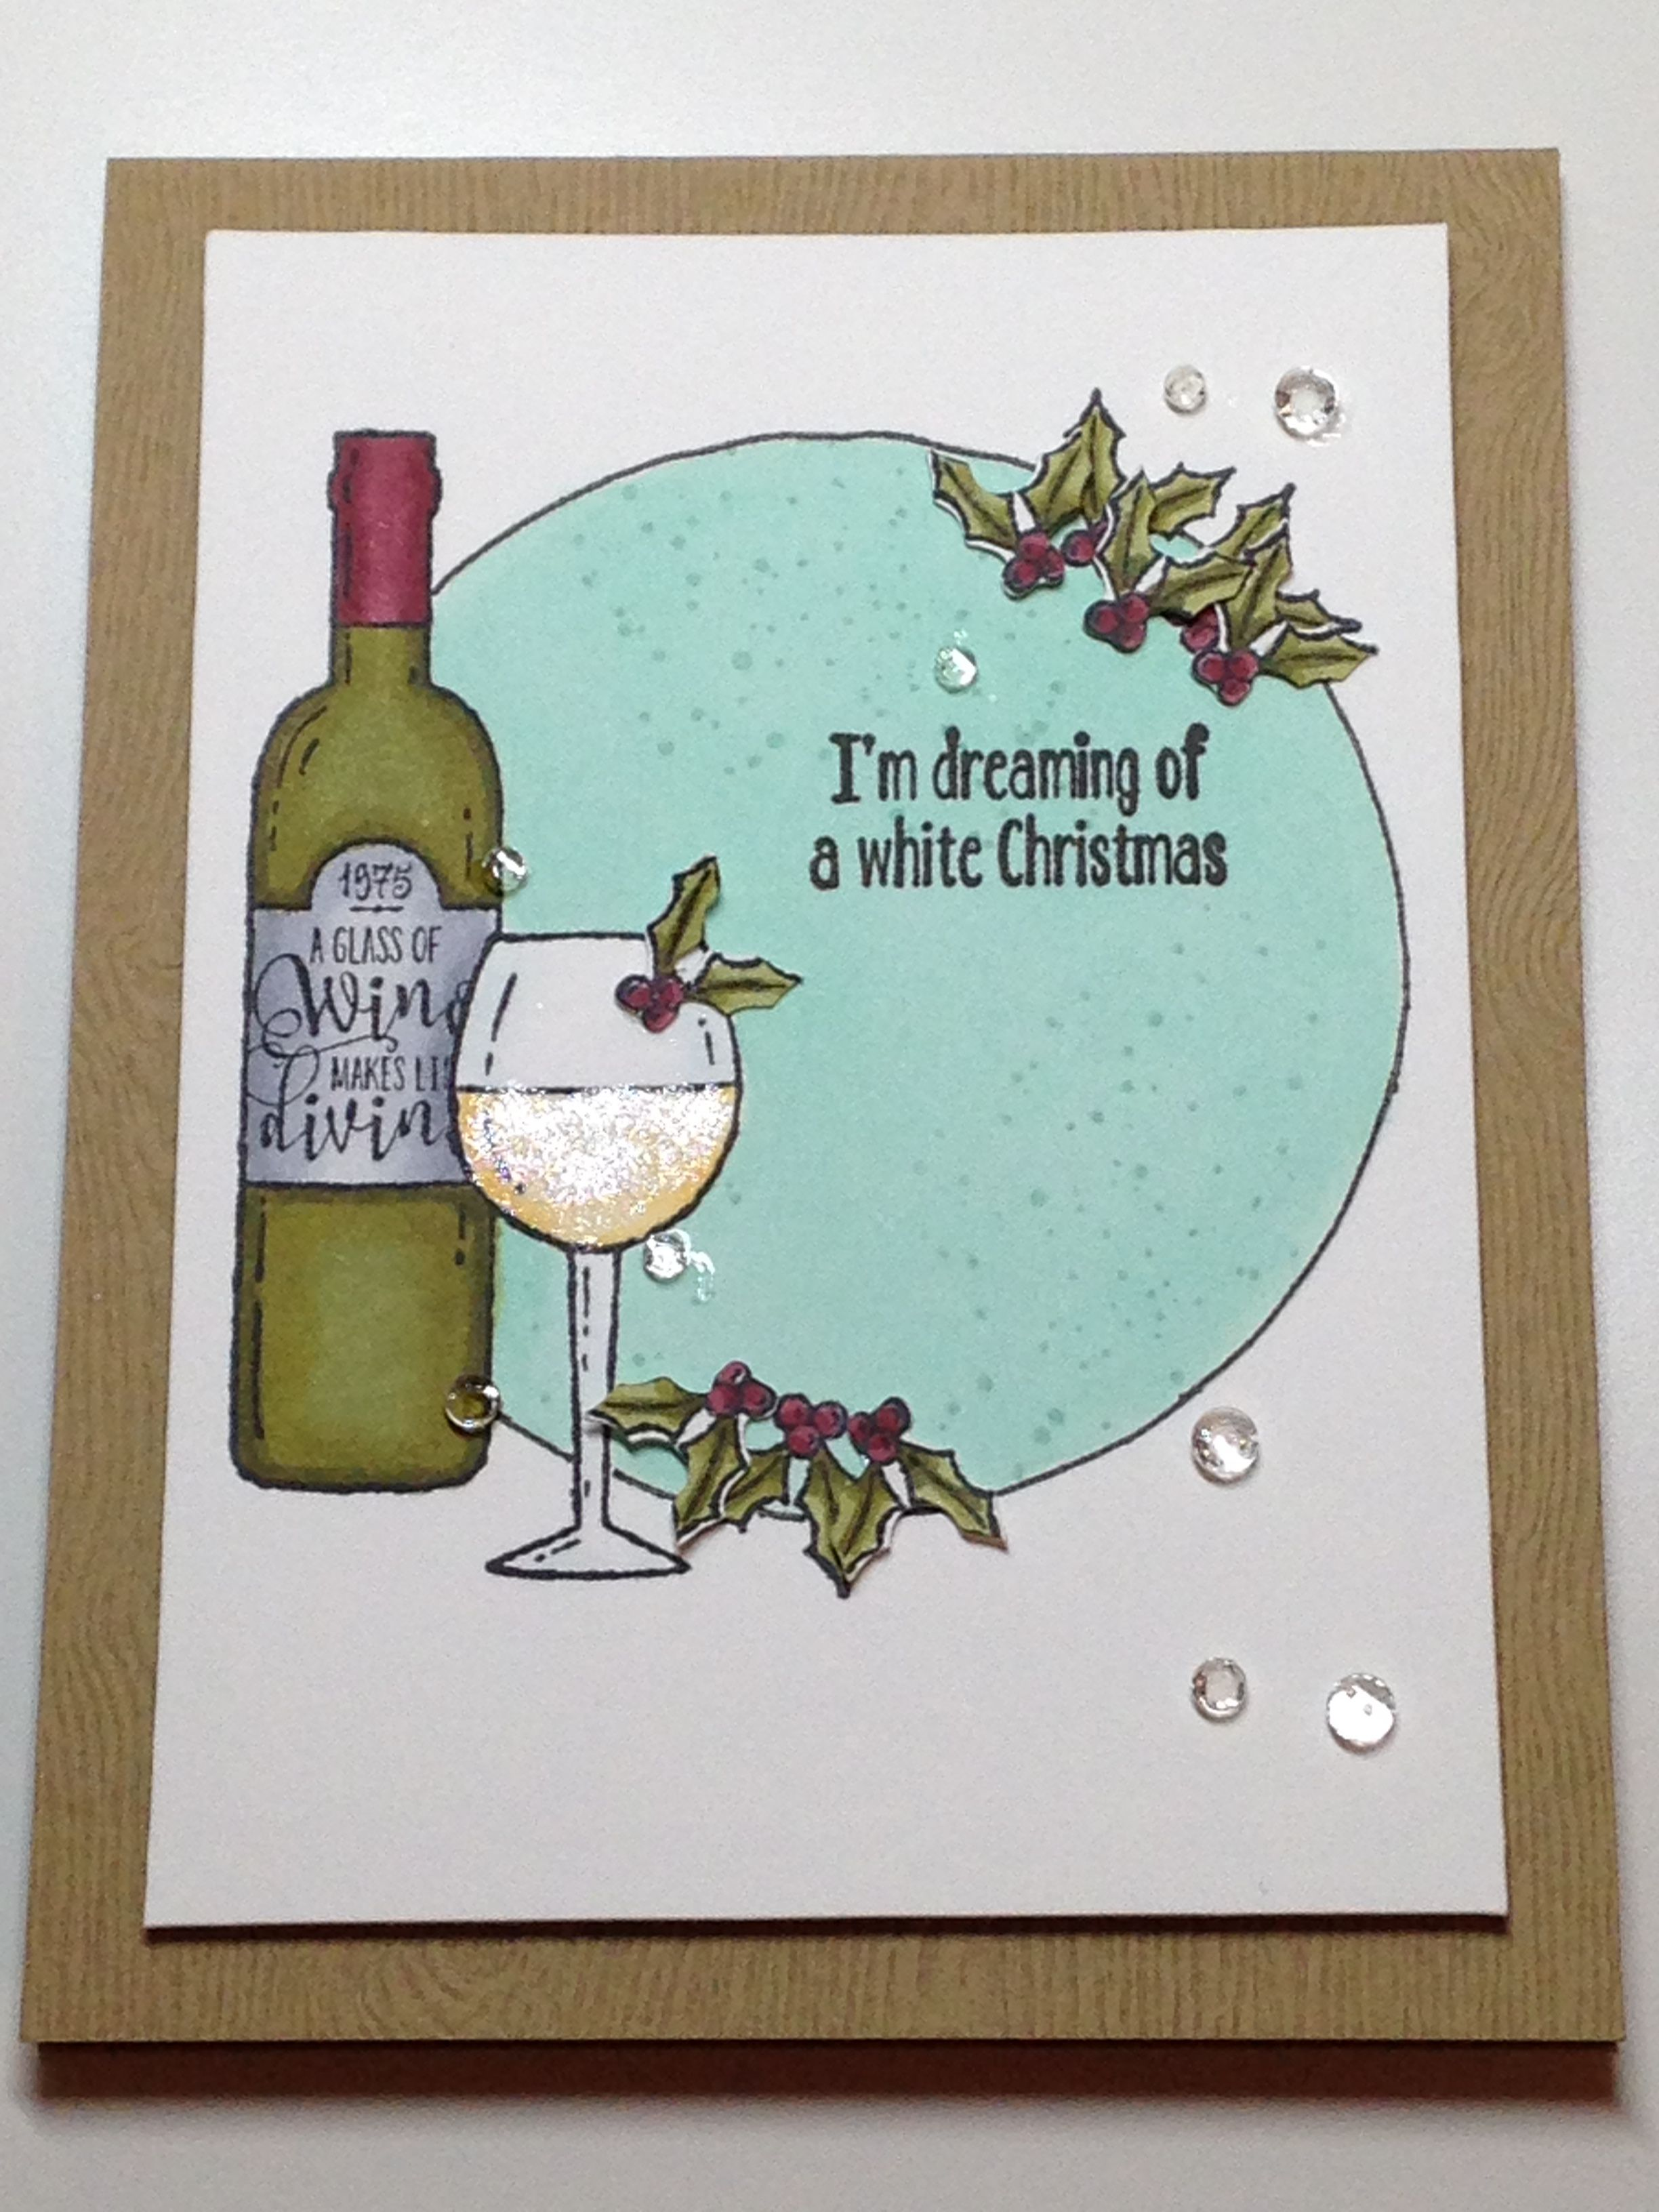 Christmas Card - Stampin' Up Stamps: Half Full, Magical Mermaid - Inks: Memento Tuxedo Black, Stampin' Up Pool Party - Copics: R56, R59, YG93, YG95, YG97, YR30, YR31, C3, C2, C0, BG10, BG70 - Studio Katia Sparkling Crystals - Spectrum Noir Sparkle Clear Overlay - Cardstock: Neenah Classic Crest Cover Solar White, Essentials by Ellen Woodgrain Embossed Tan